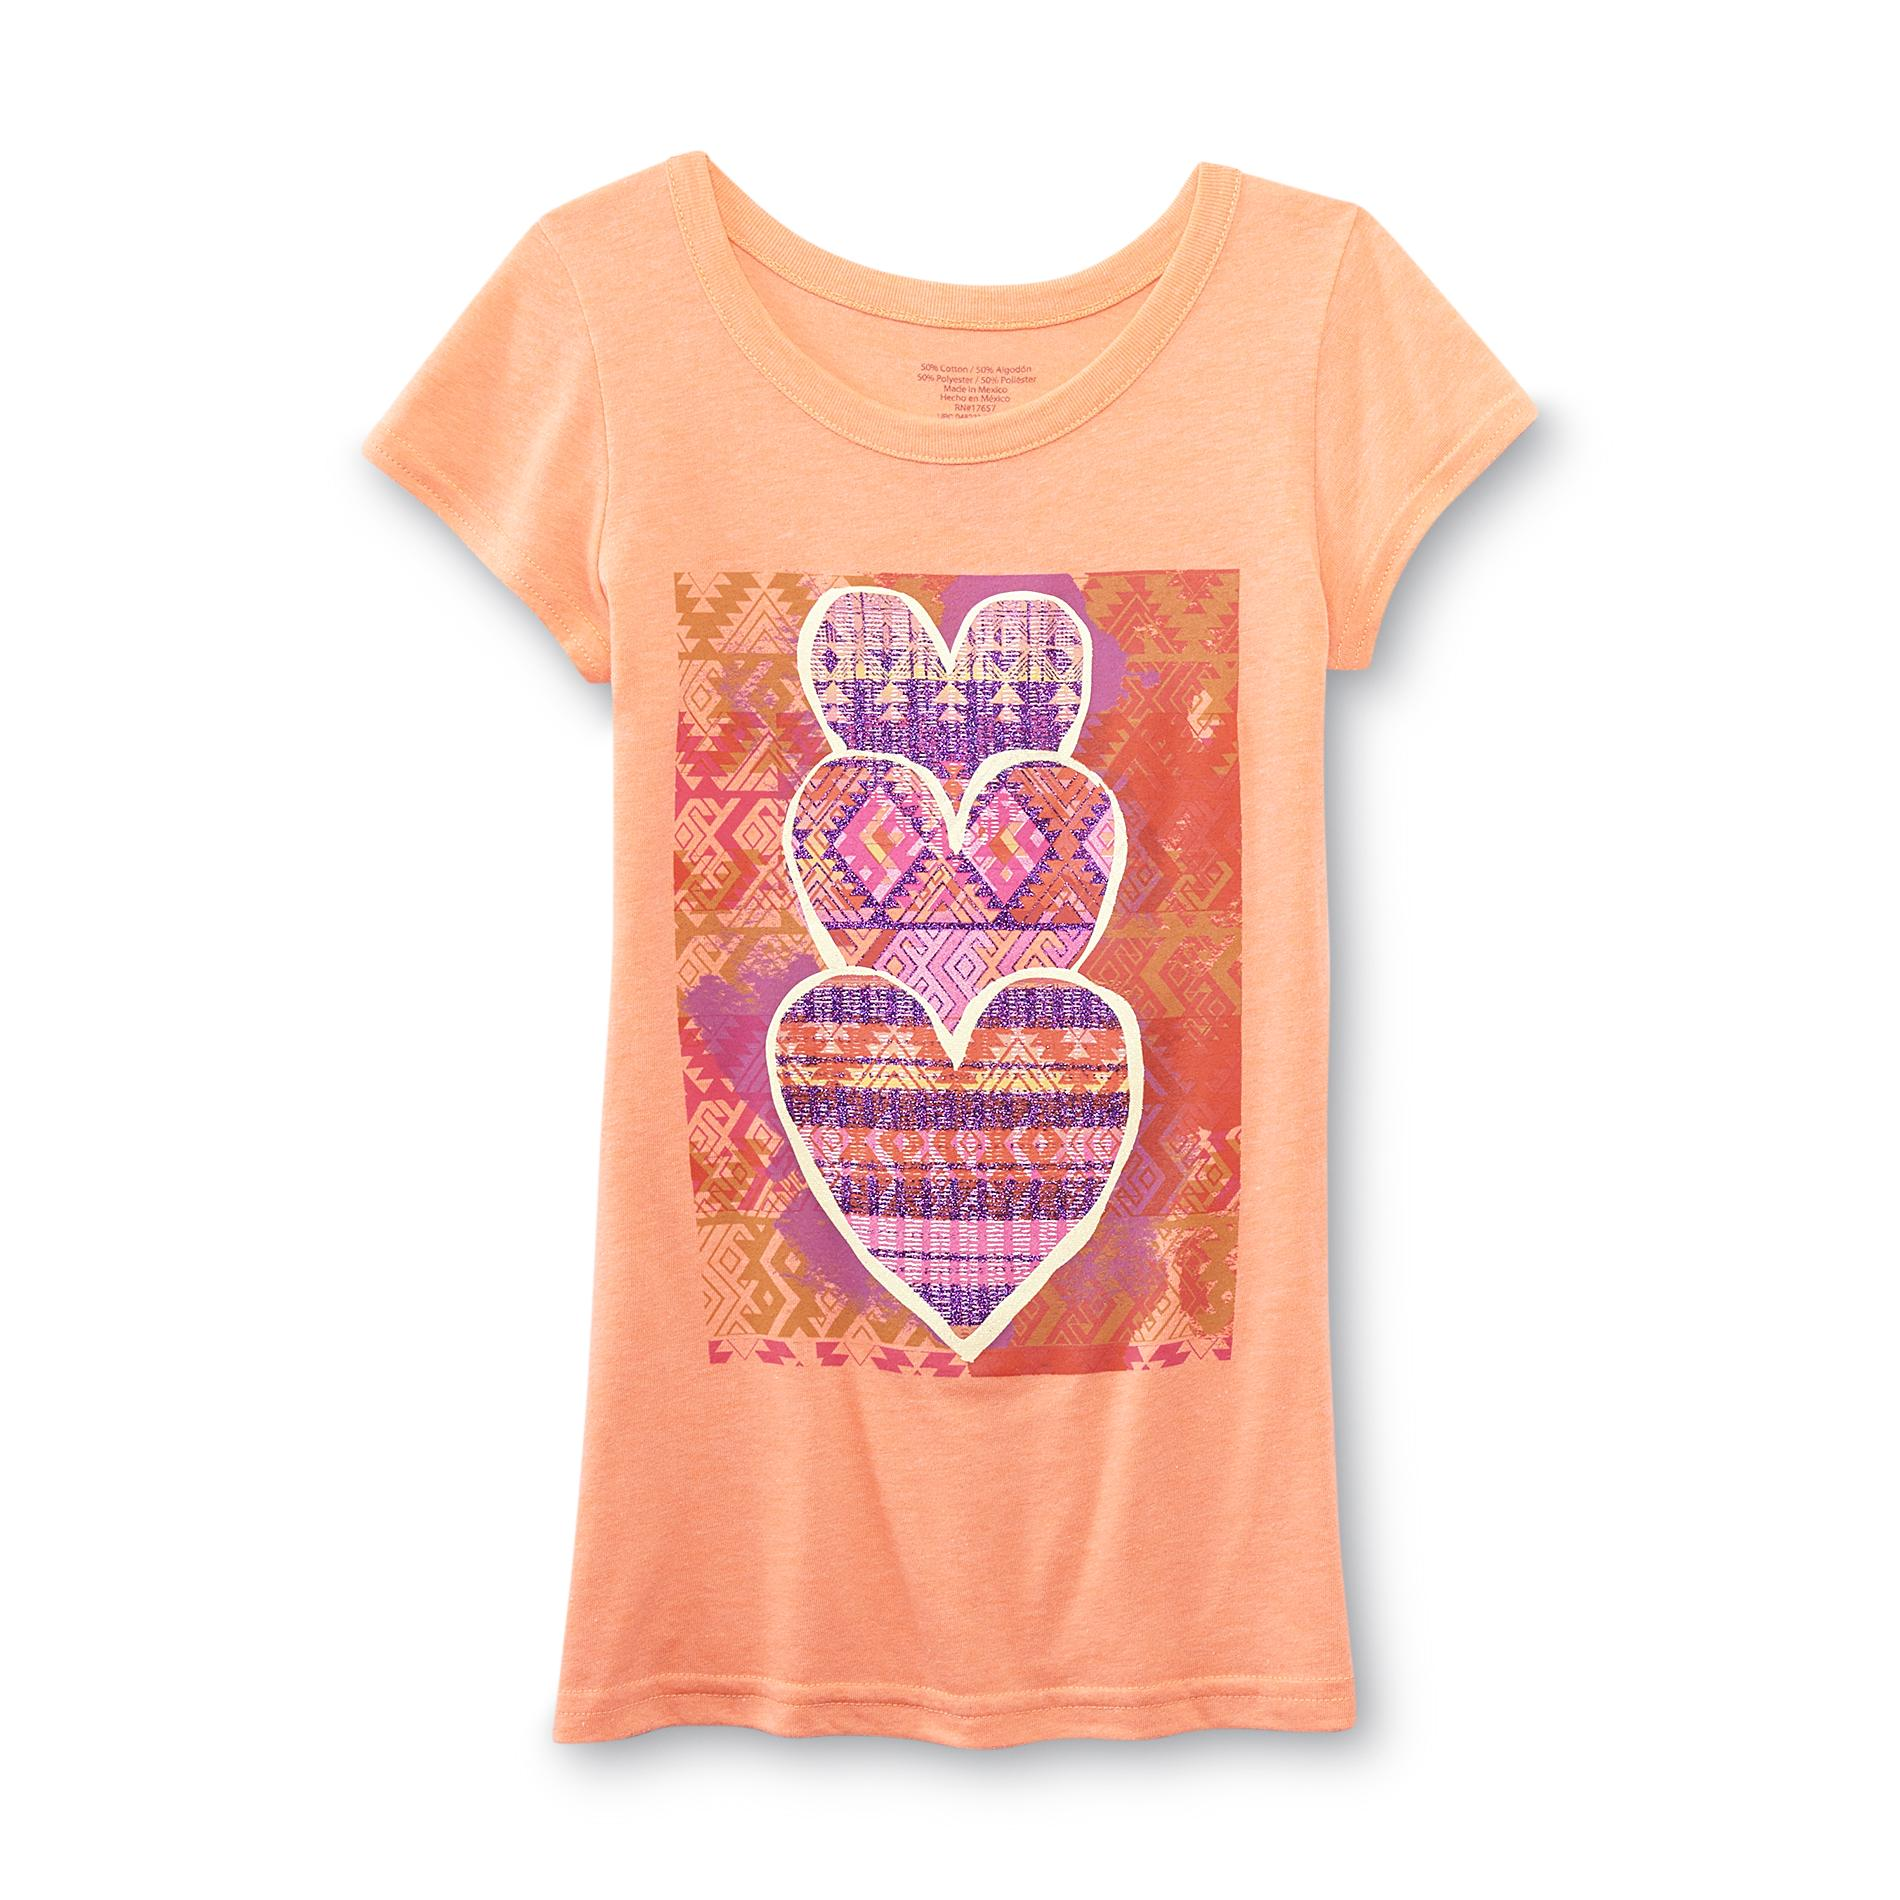 Girl's Graphic T-Shirt - Hearts